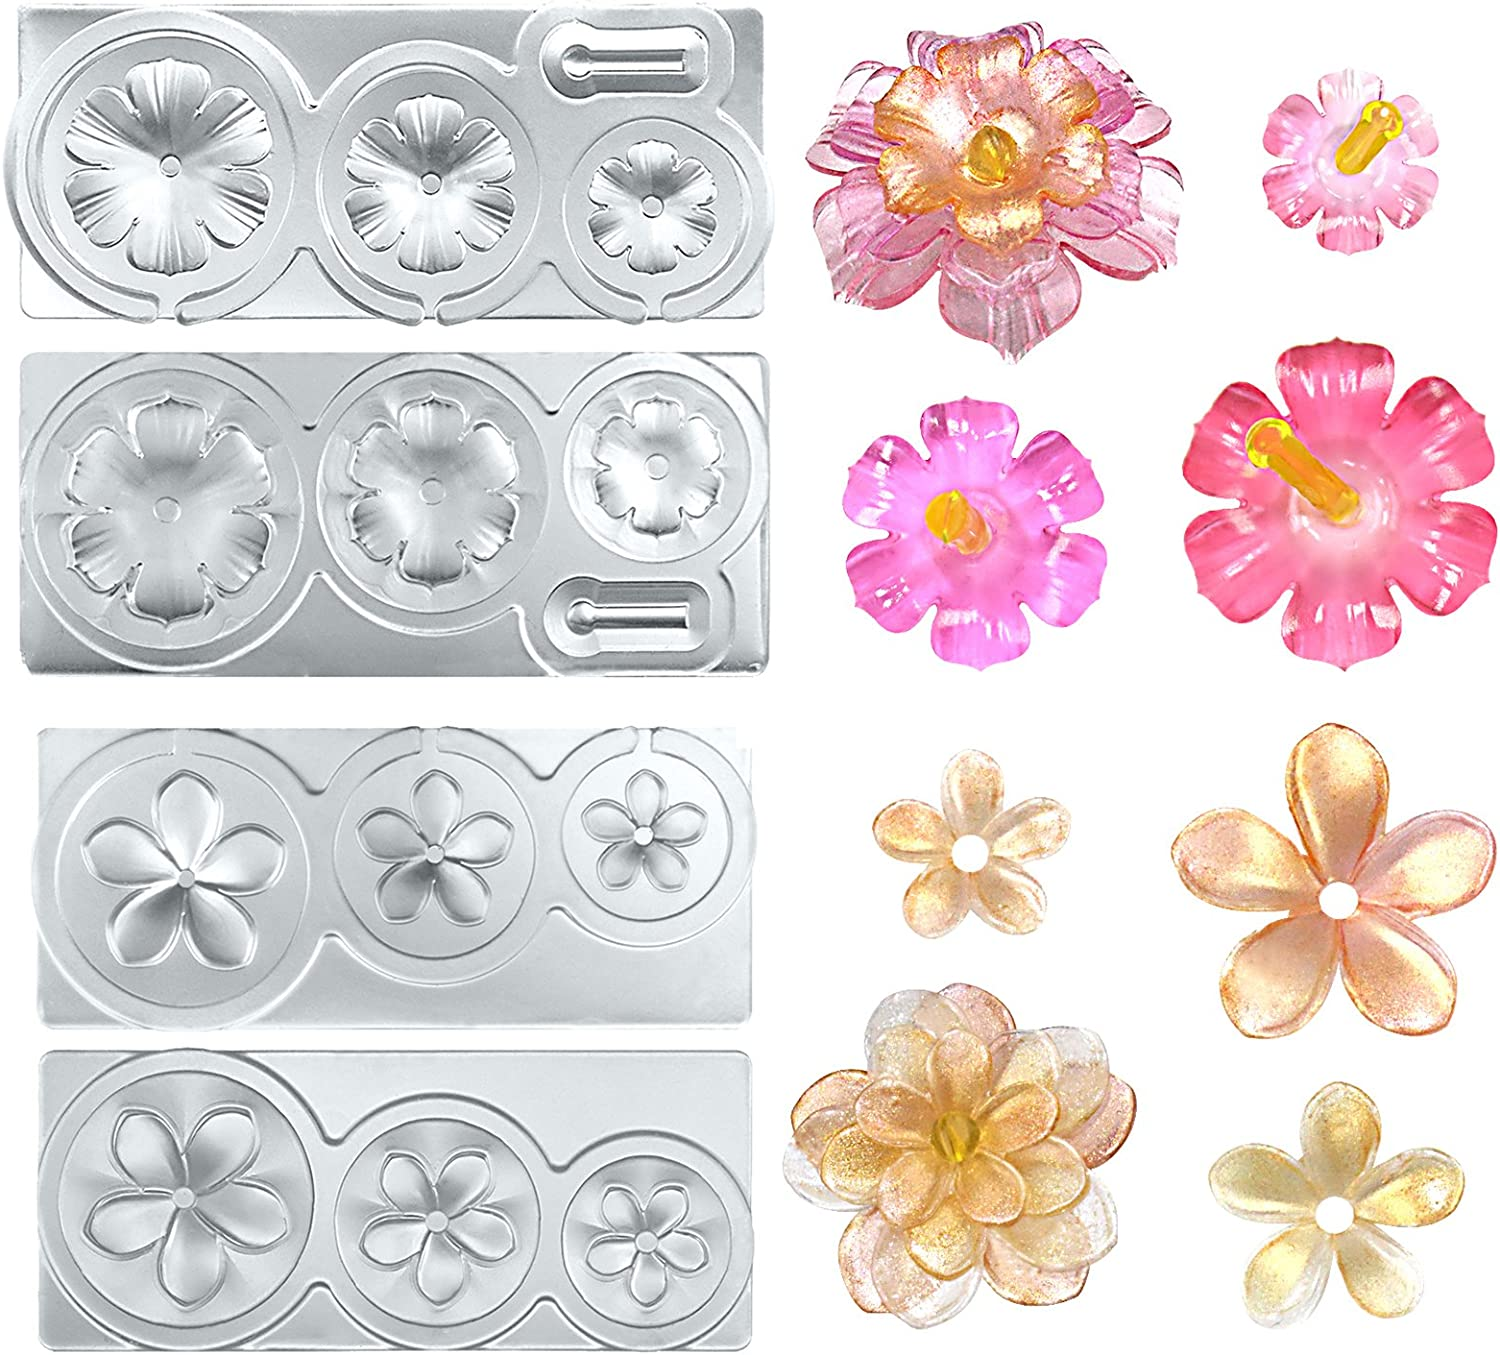 Tiny flowers mini mold mm007 about 12 wide each Resin plumeria silicone mold Fondant or gumpaste mold for cakes or cupcake toppers